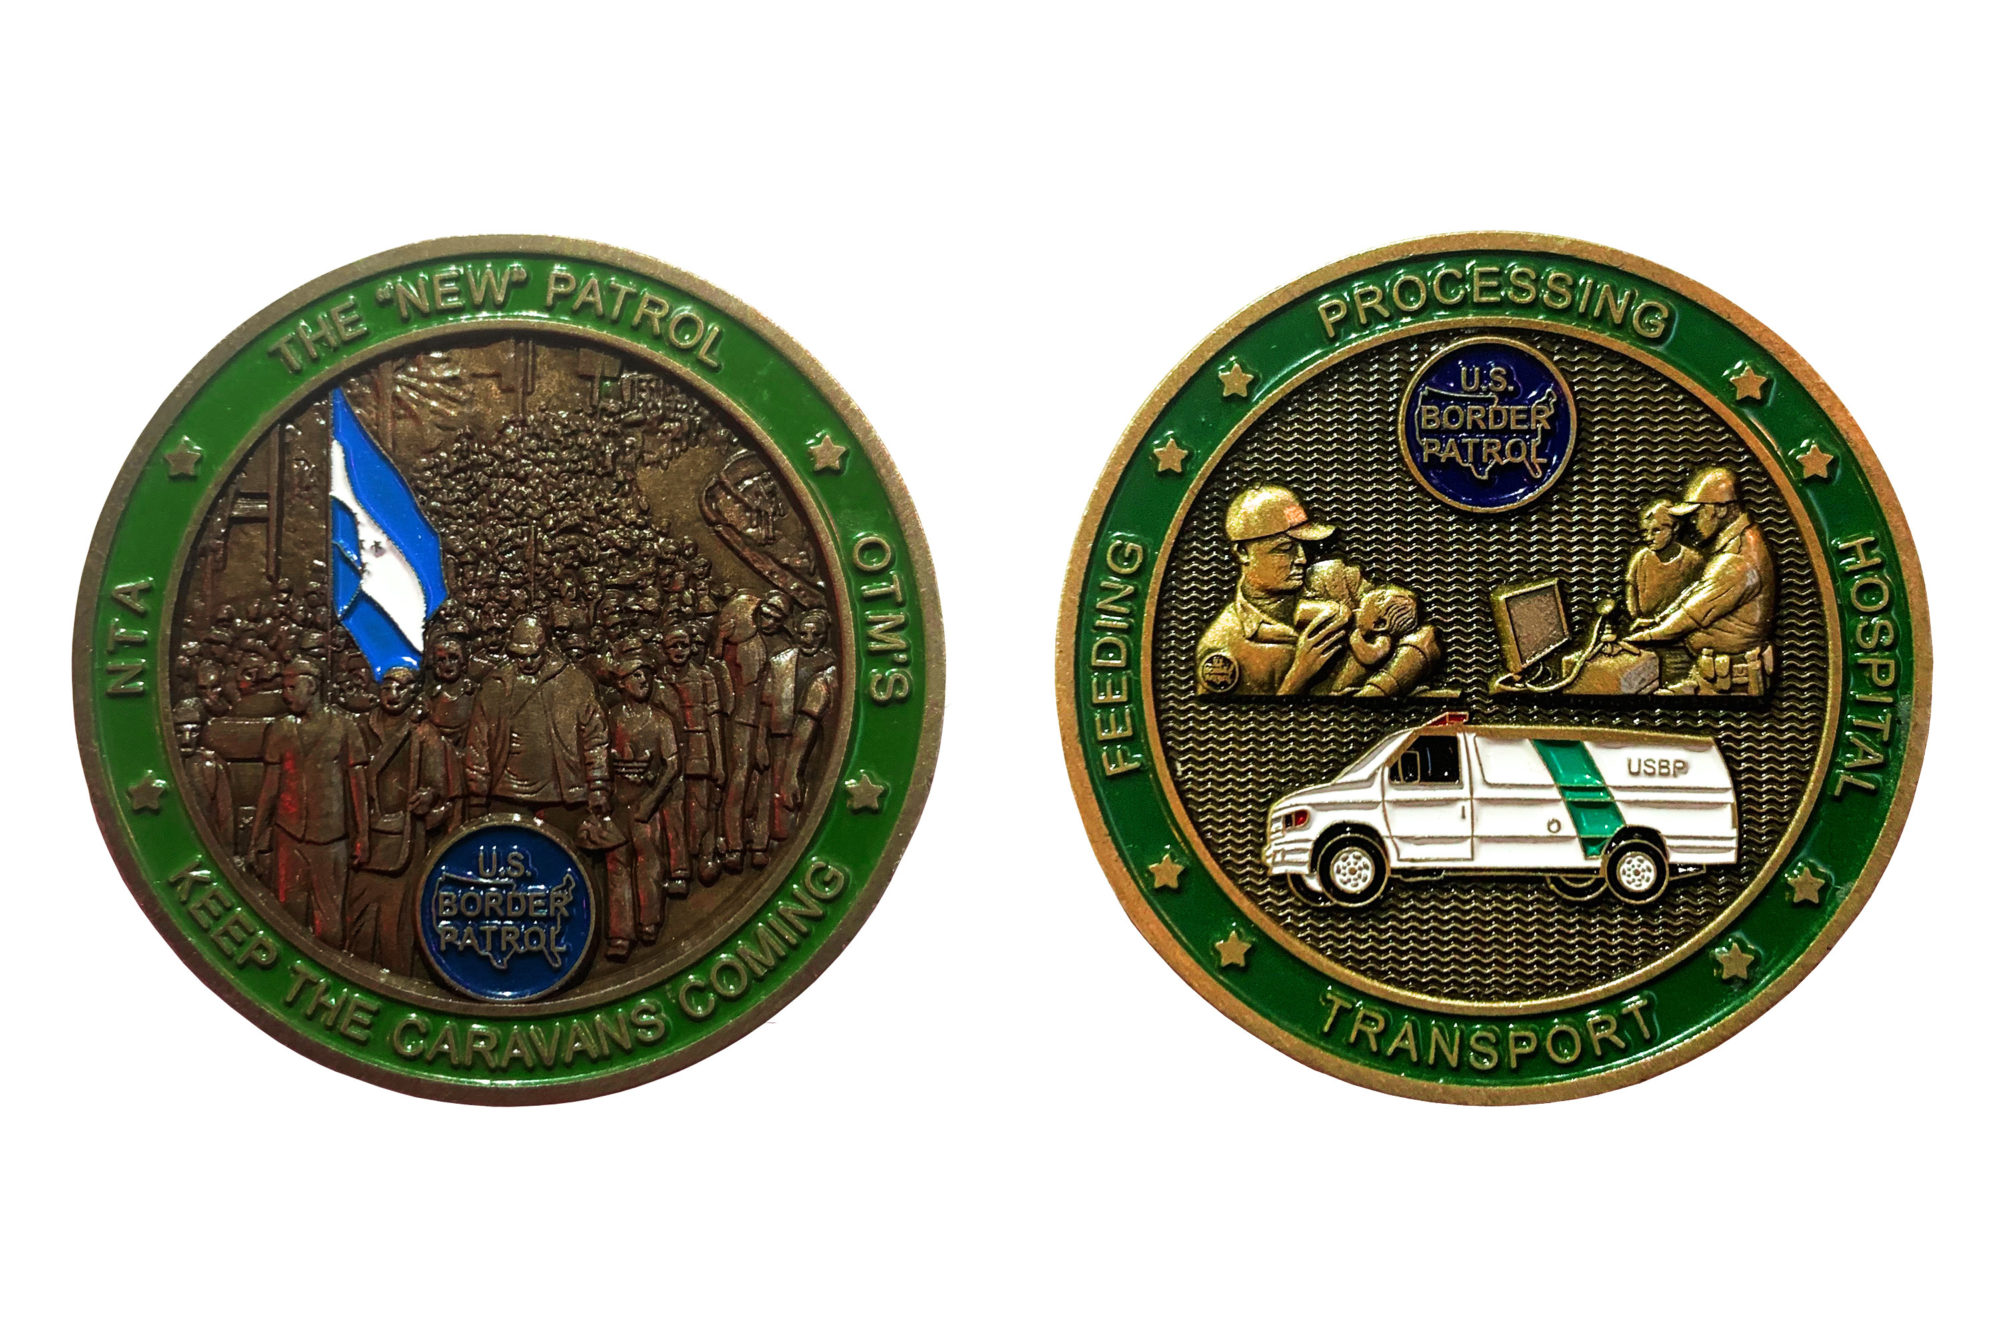 Border Patrol Agents Are Passing Around A Commemorative Coin Mocking Care for Migrant Kids